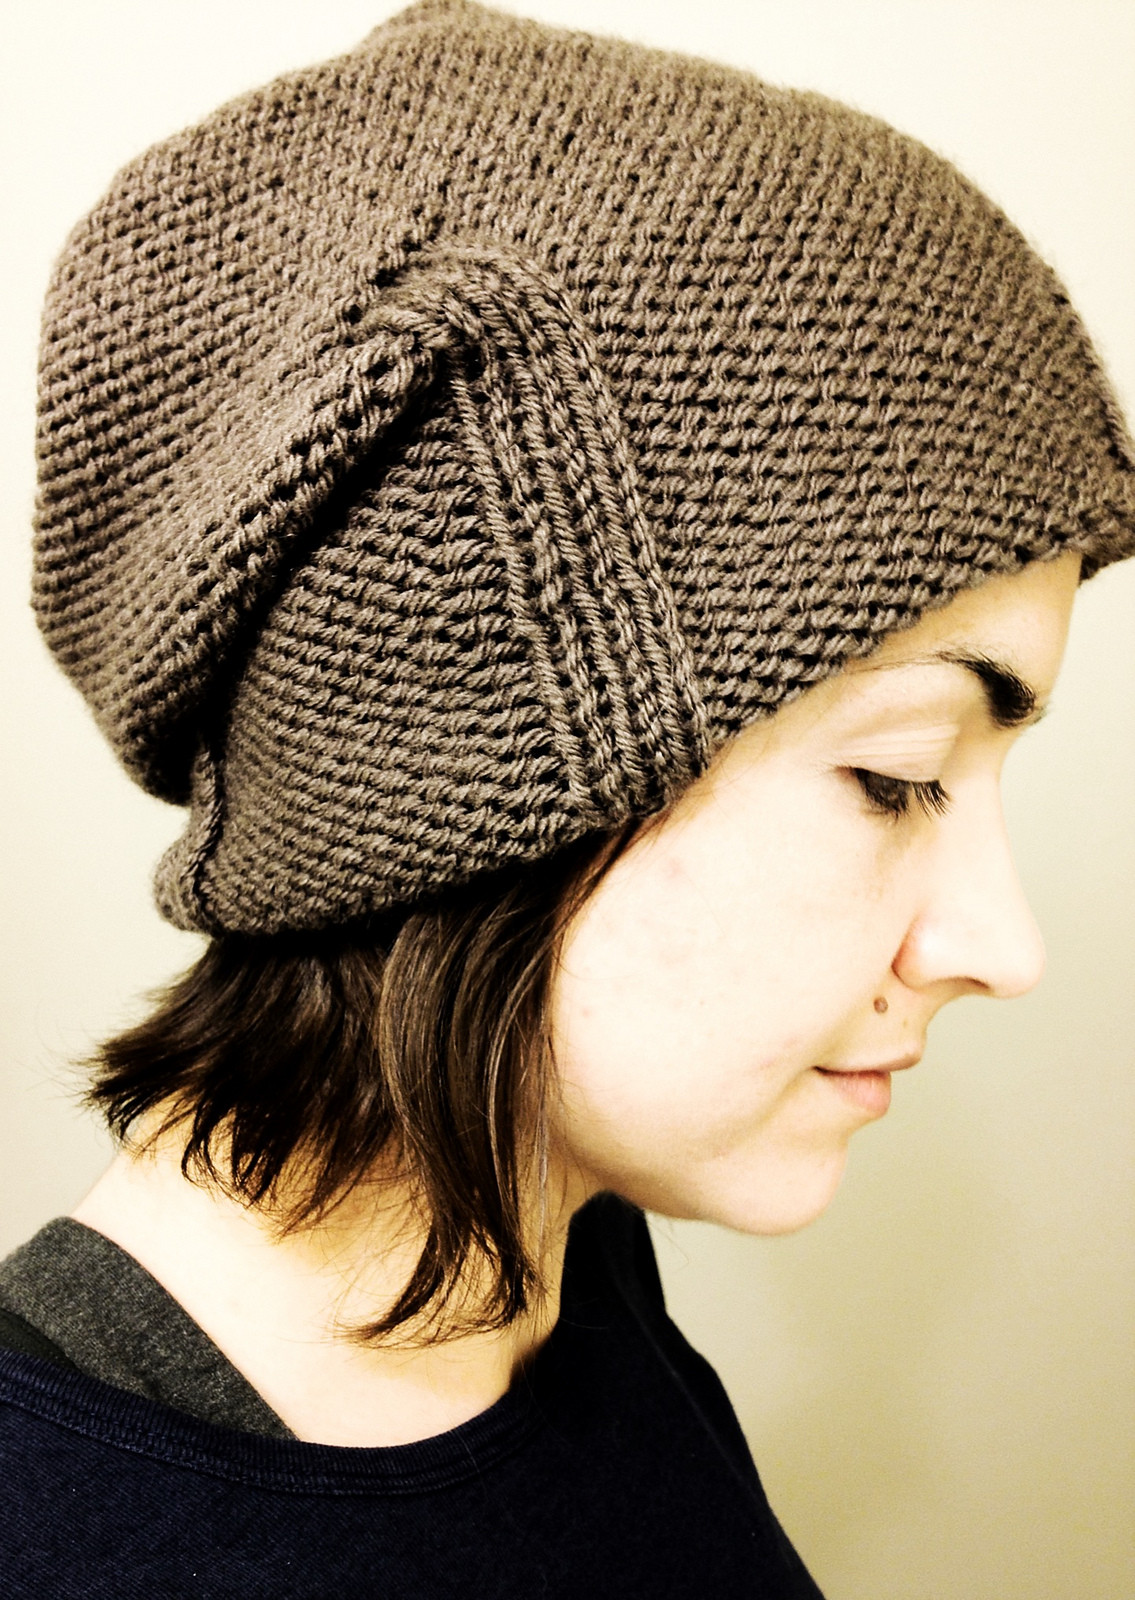 Elegant Slouchy Beanie Knitting Patterns Knit Slouchy Beanie Of Lovely 42 Images Knit Slouchy Beanie